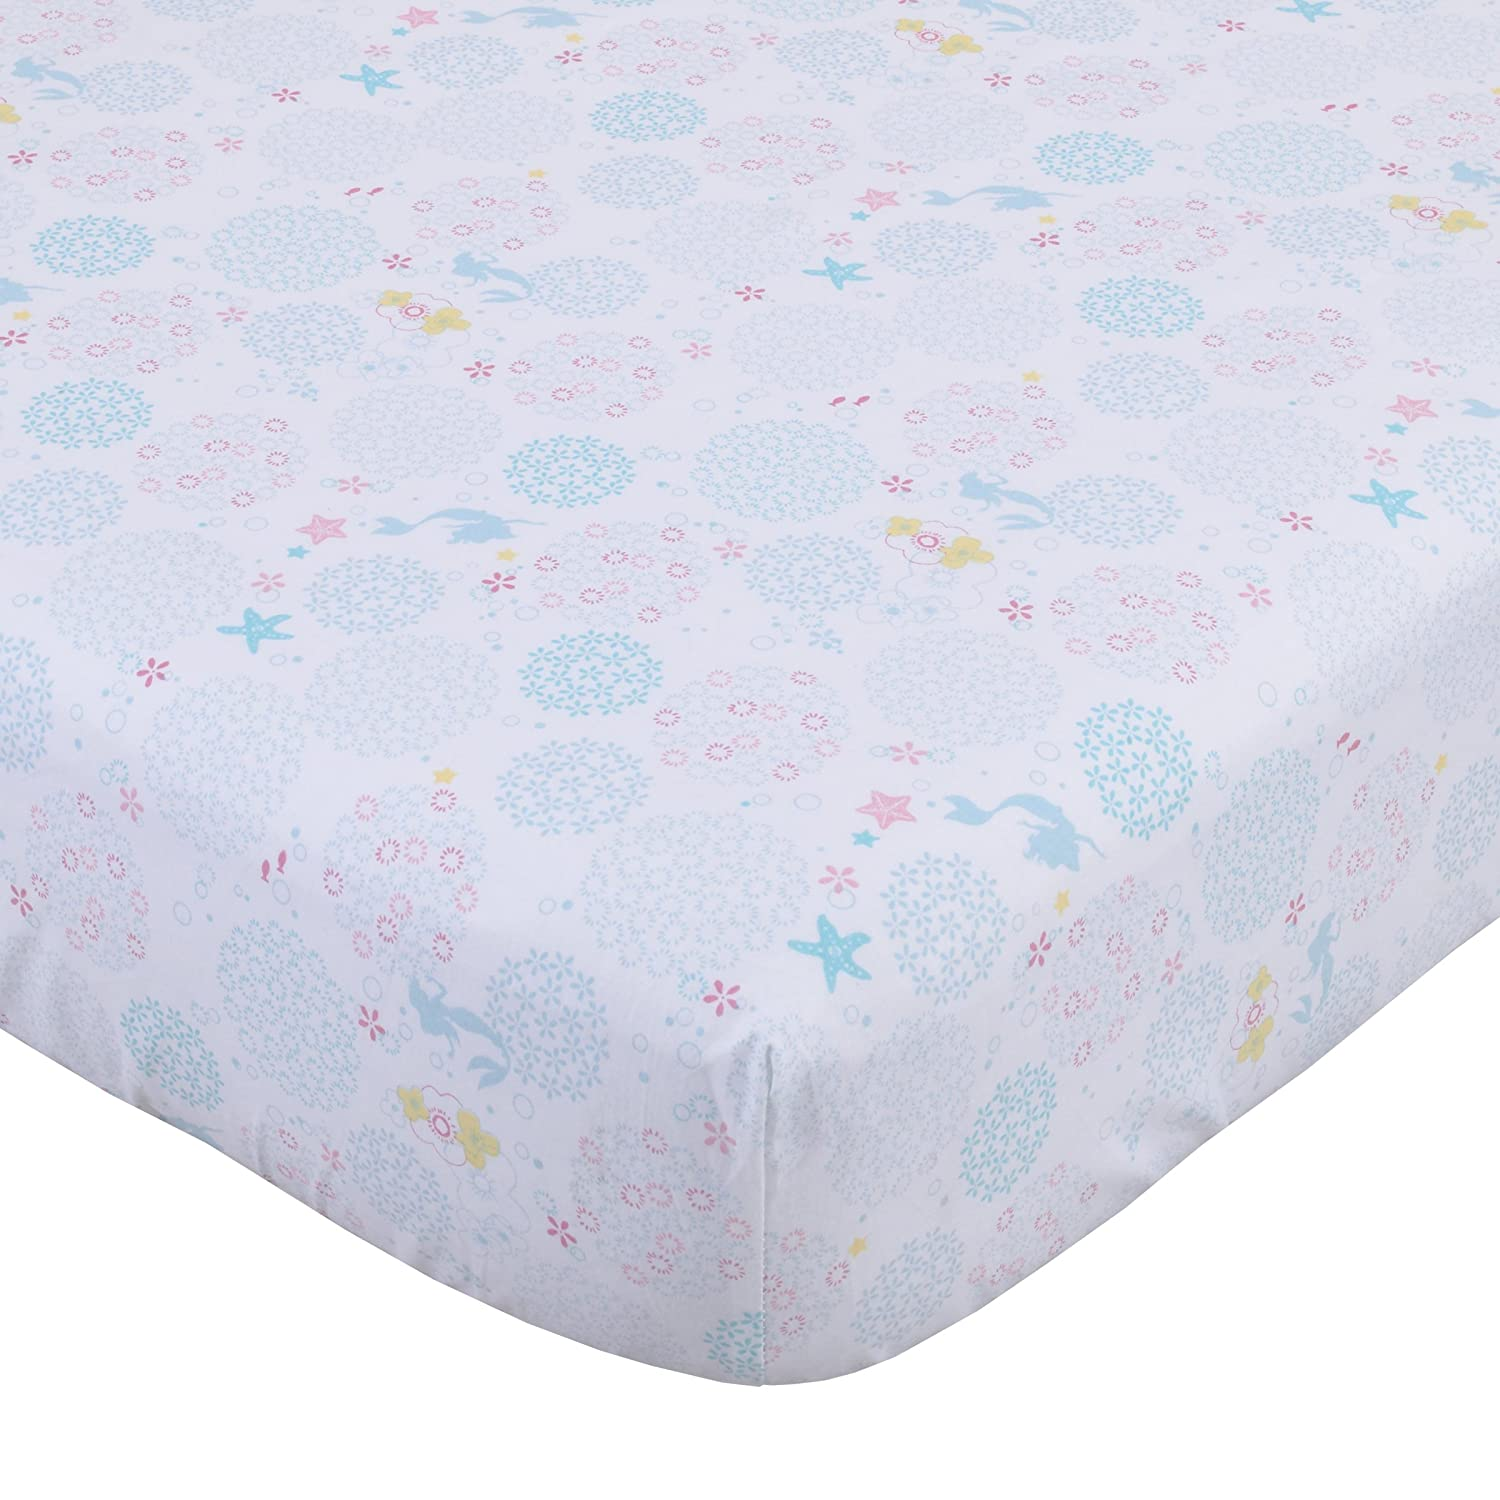 Disney Ariel Sea Princess Crib Sheet, White/Blue/Pink/Gold Crown Crafts Inc 3395003